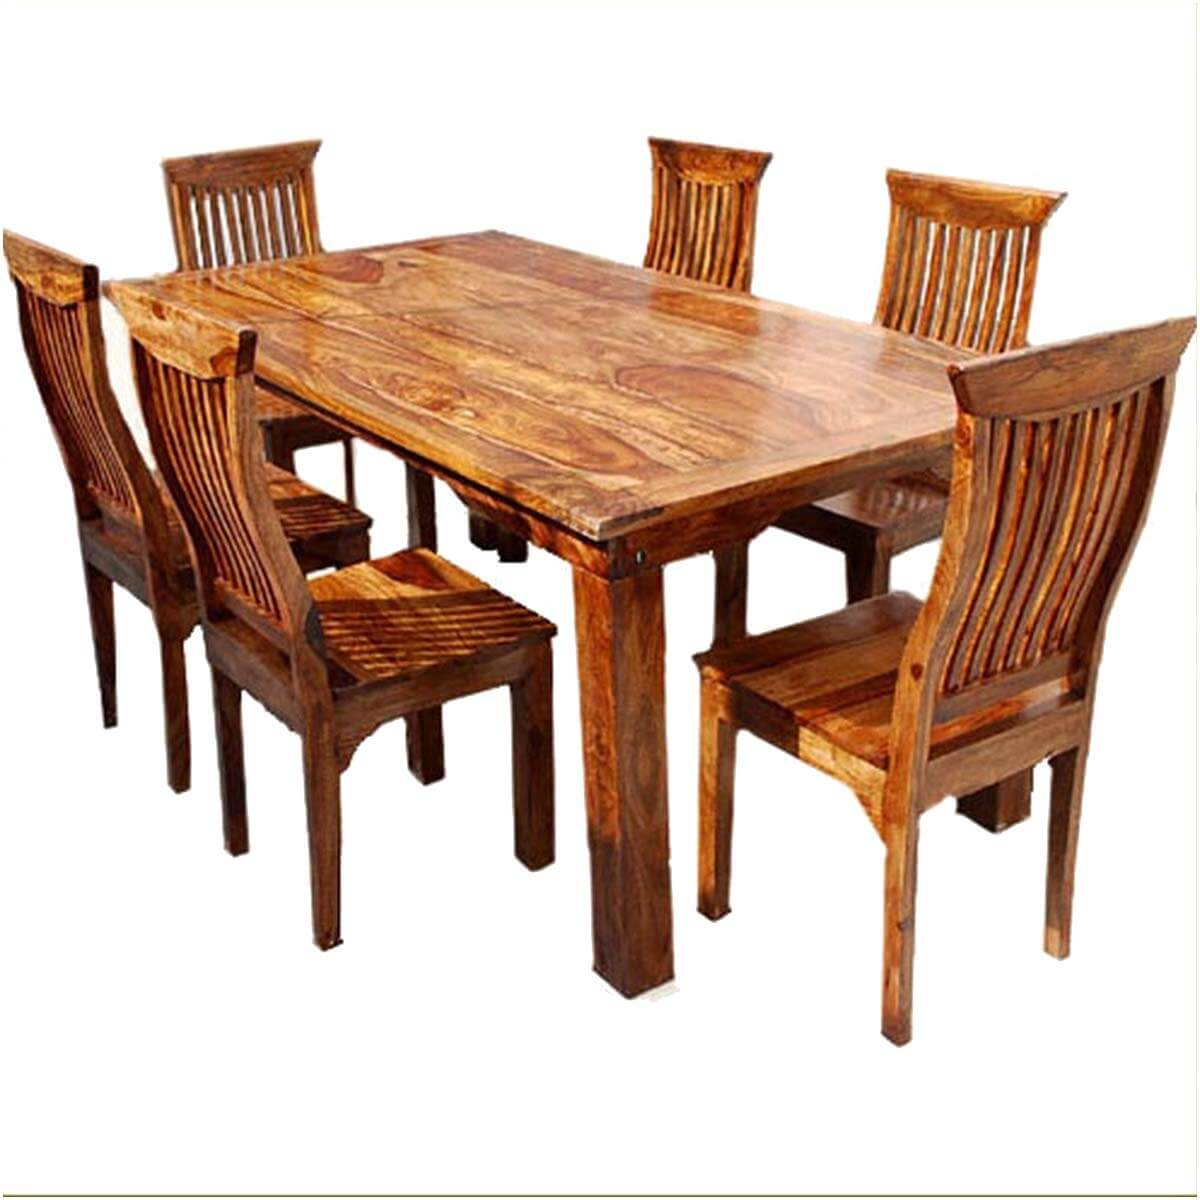 Wooden Dining Table Set ~ Dallas ranch solid wood rustic dining table chairs hutch set